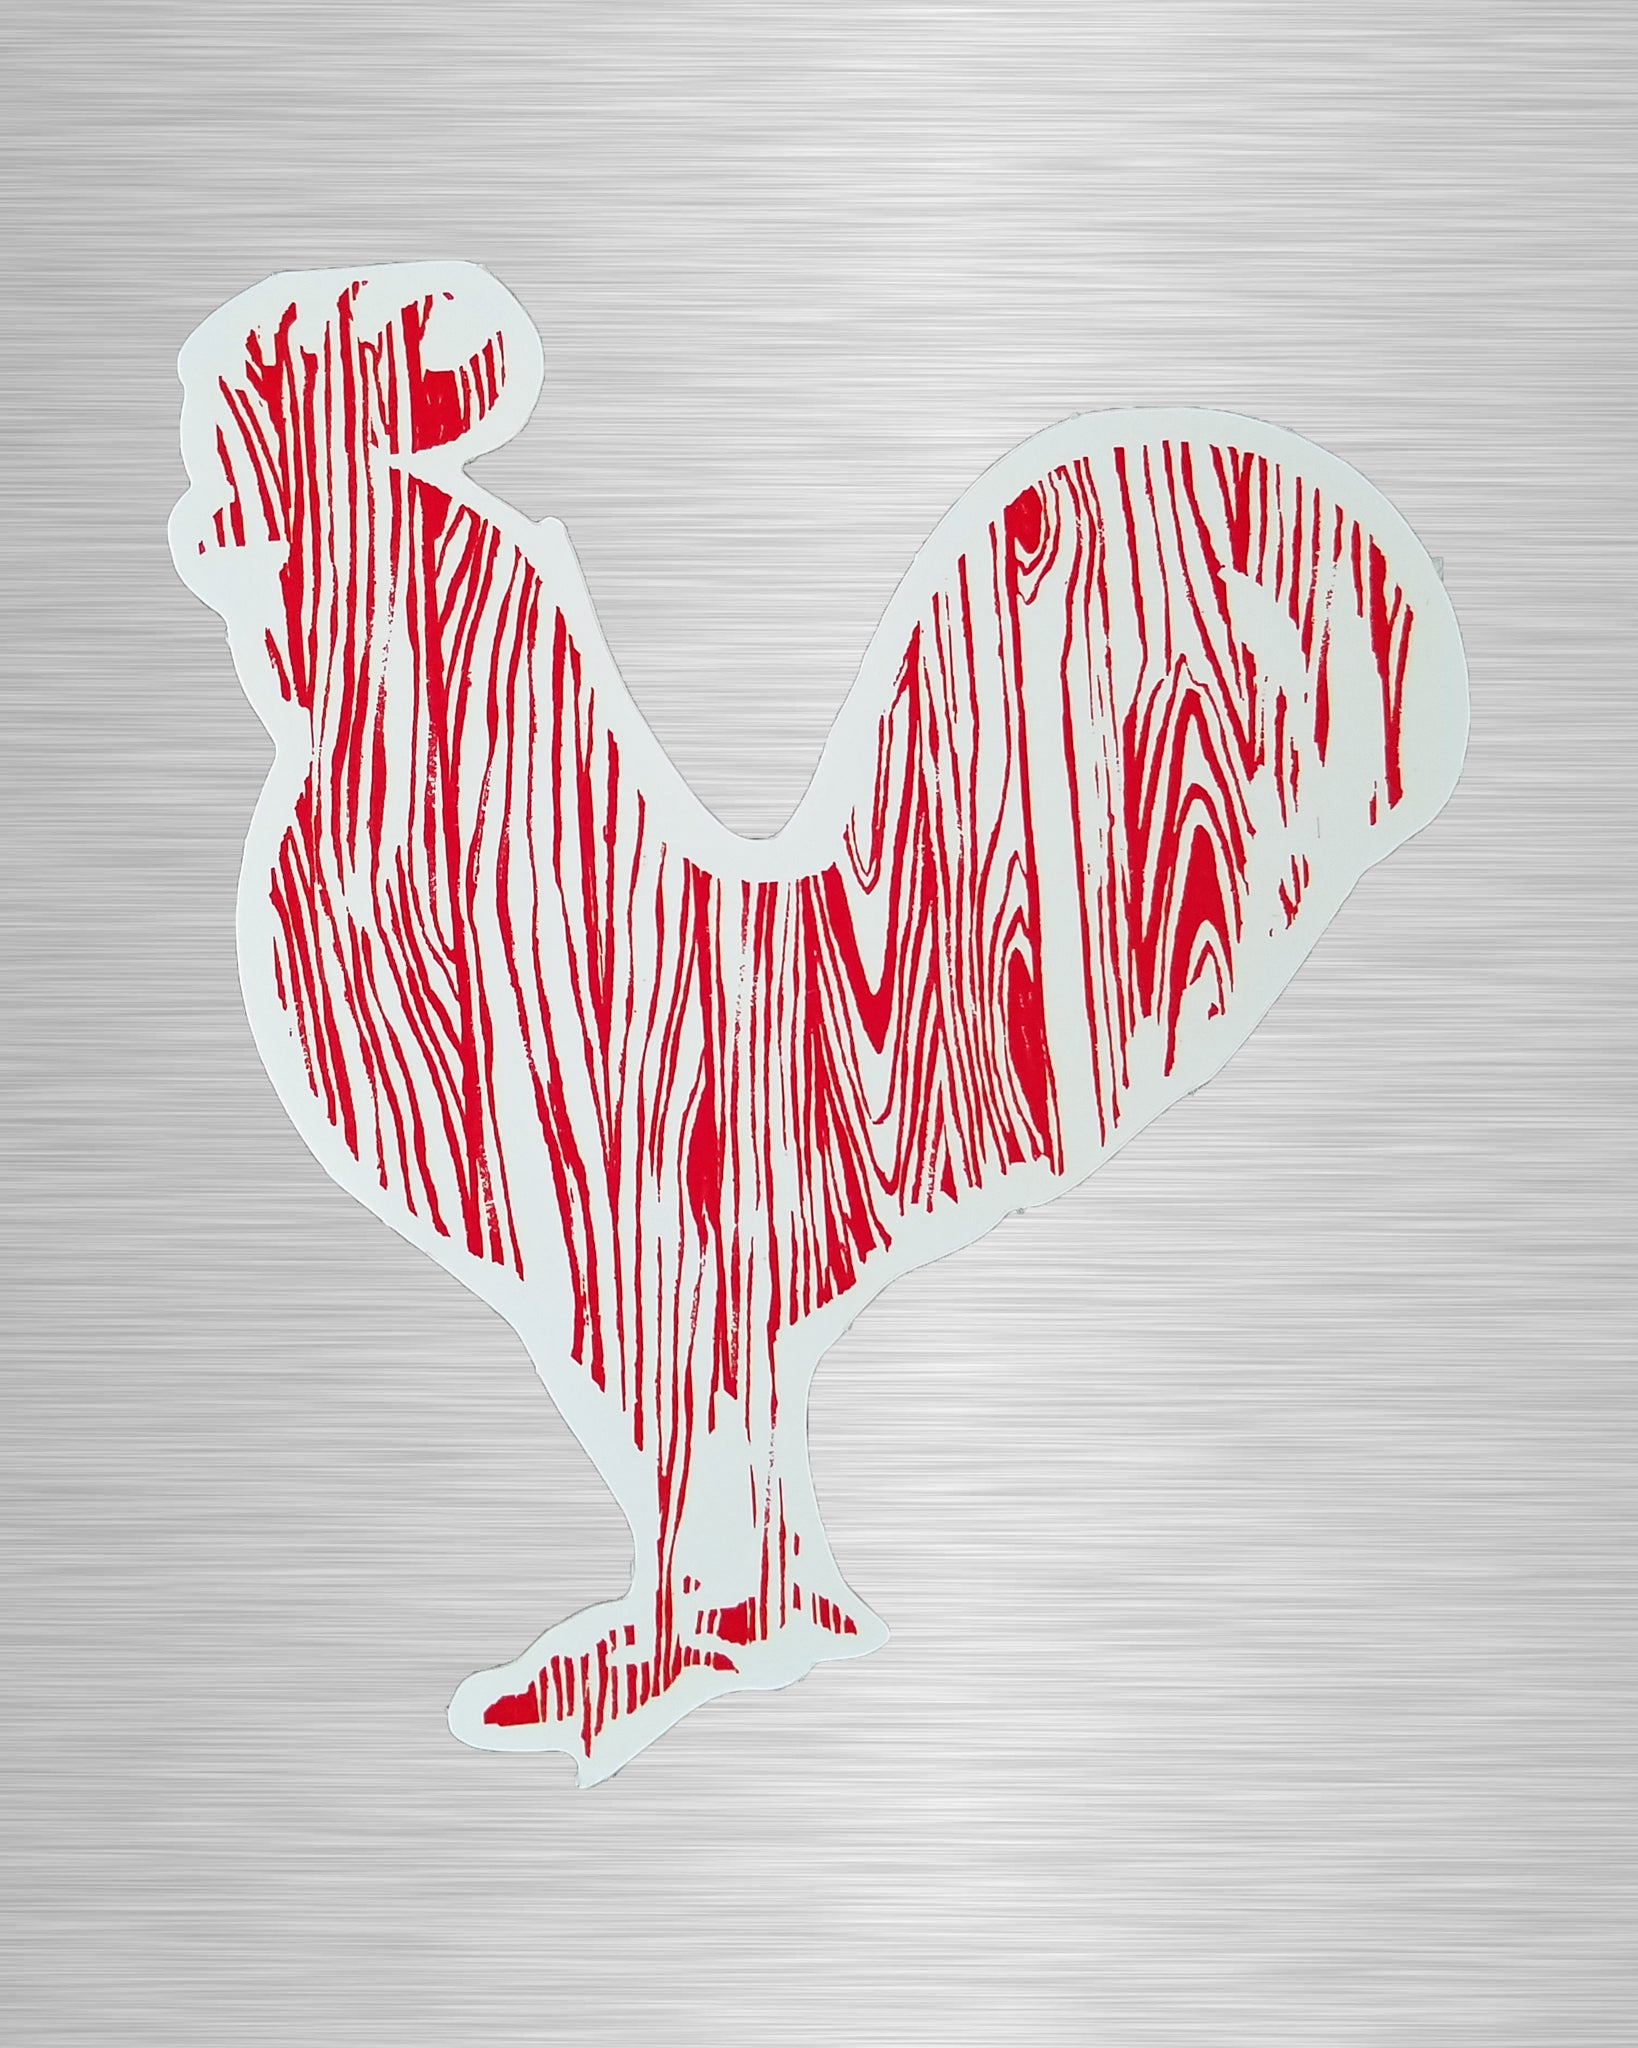 Wood Grain Rooster Sticker/Decal